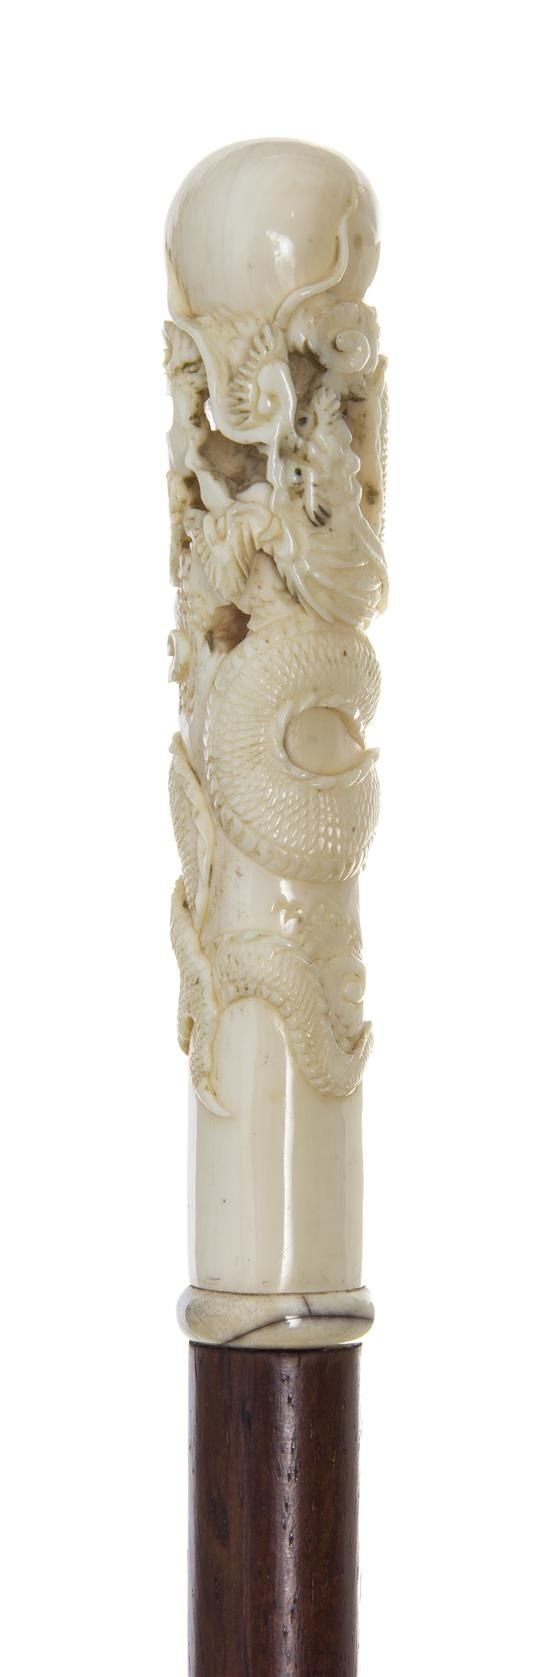 A Chinese Ivory Handled Walking Stick, Length of handle 4 1/2 x length over